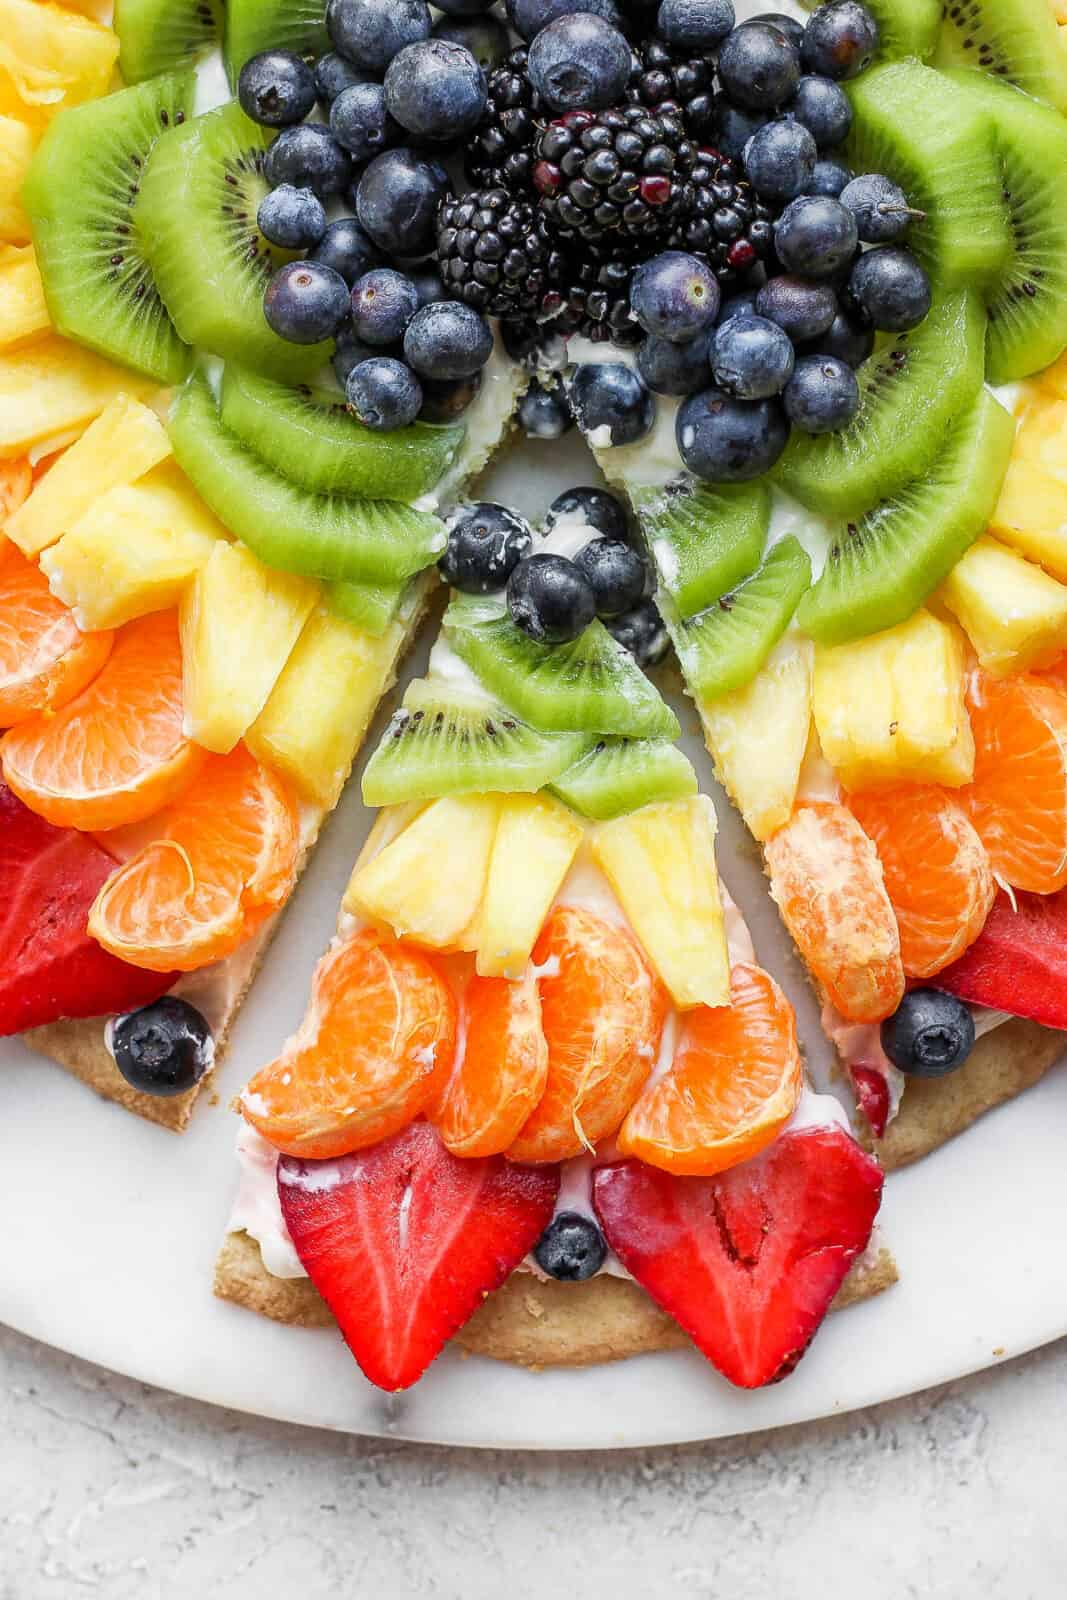 A close-up of a slice of fruit pizza.